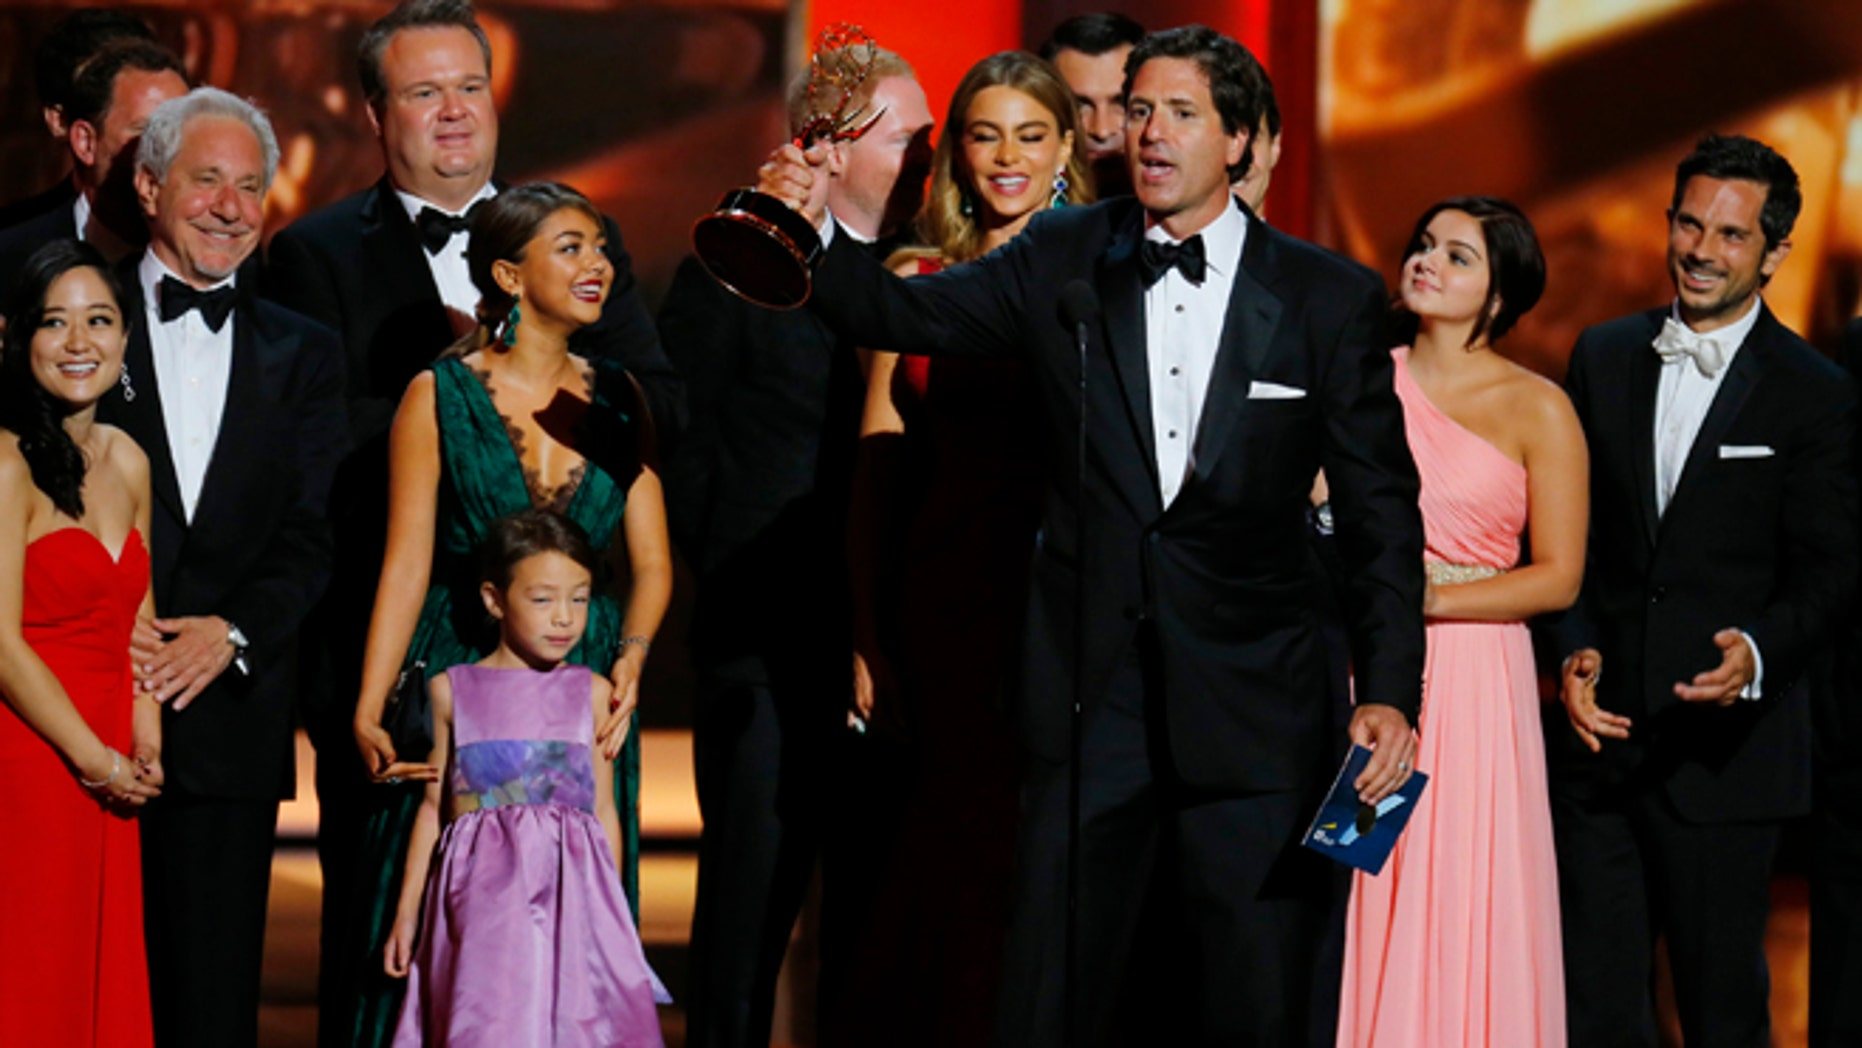 """Steven Levitan, Executive Producer, accepts the award for Outstanding Comedy Series for """"Modern Family"""" at the 65th Primetime Emmy Awards in Los Angeles September 22, 2013."""